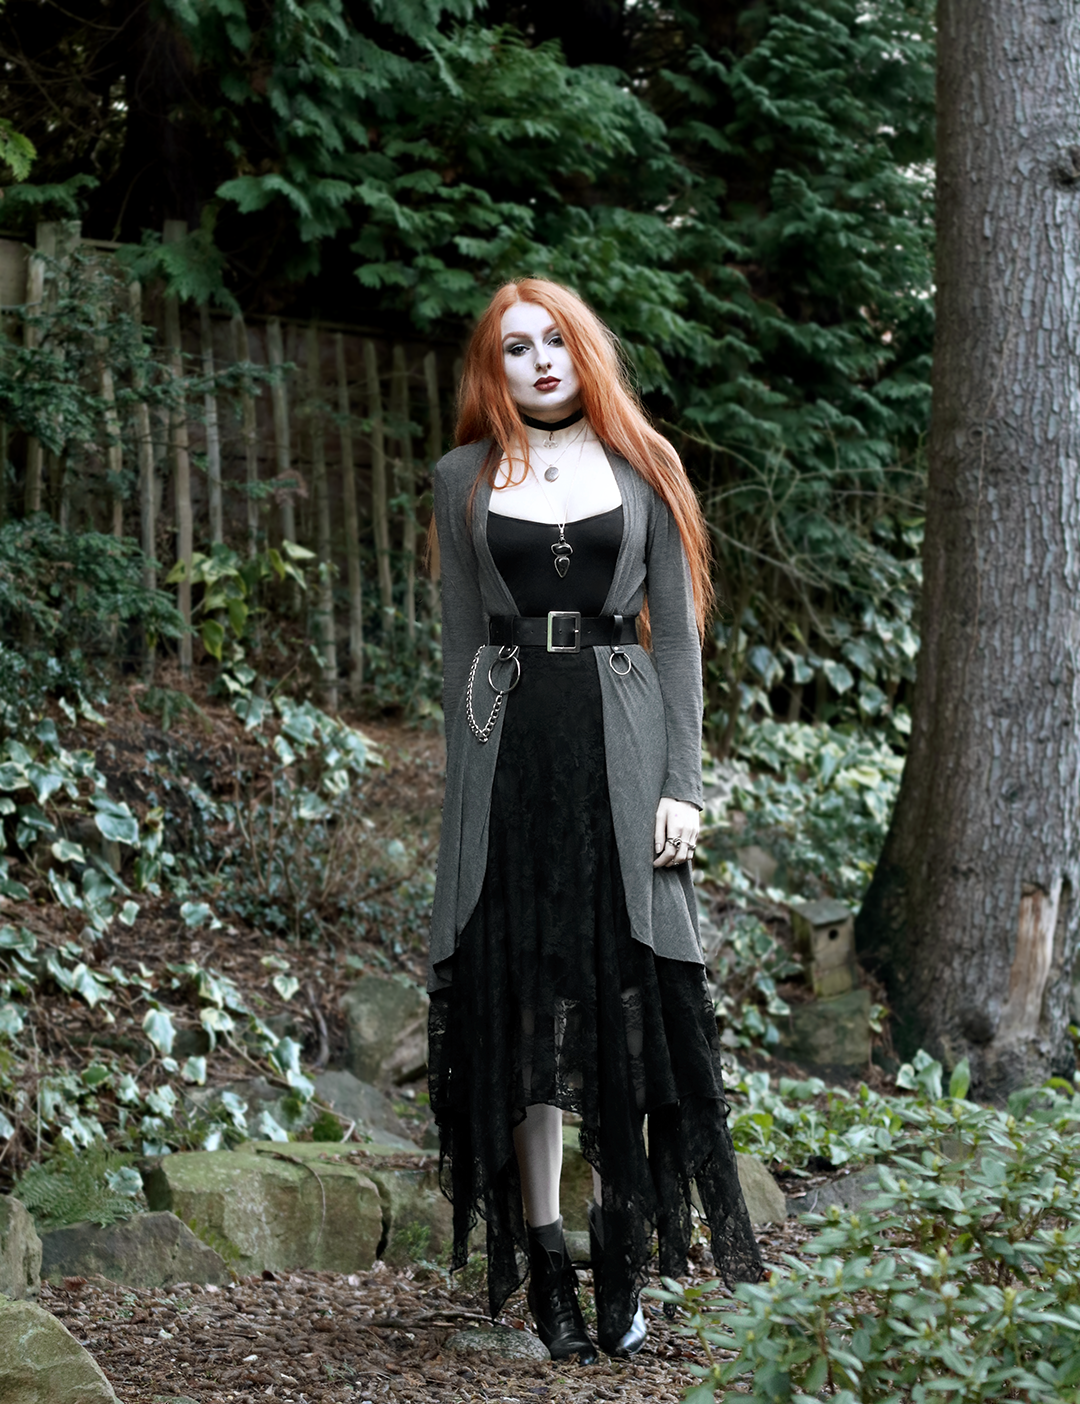 Olivia Emily - Layers of Drapey Fabric. Outfit featuring Corvus Corone Lace Skirt, Grey Jersey Long Cardigan, Asos Chain Belt, and Vintage Pointed Boots